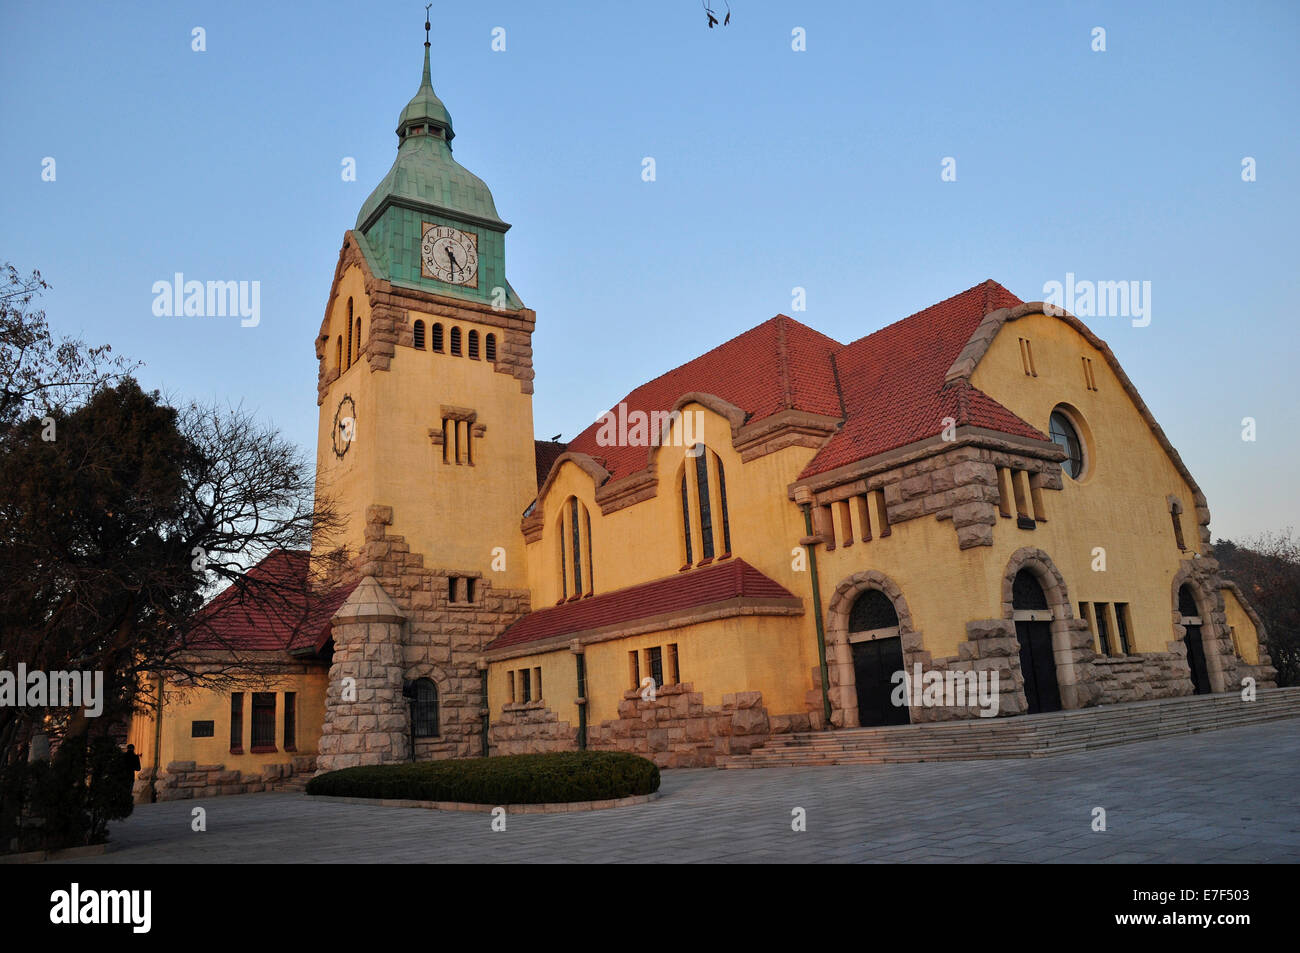 In Qingdao Stock Photos & In Qingdao Stock Images - Alamy